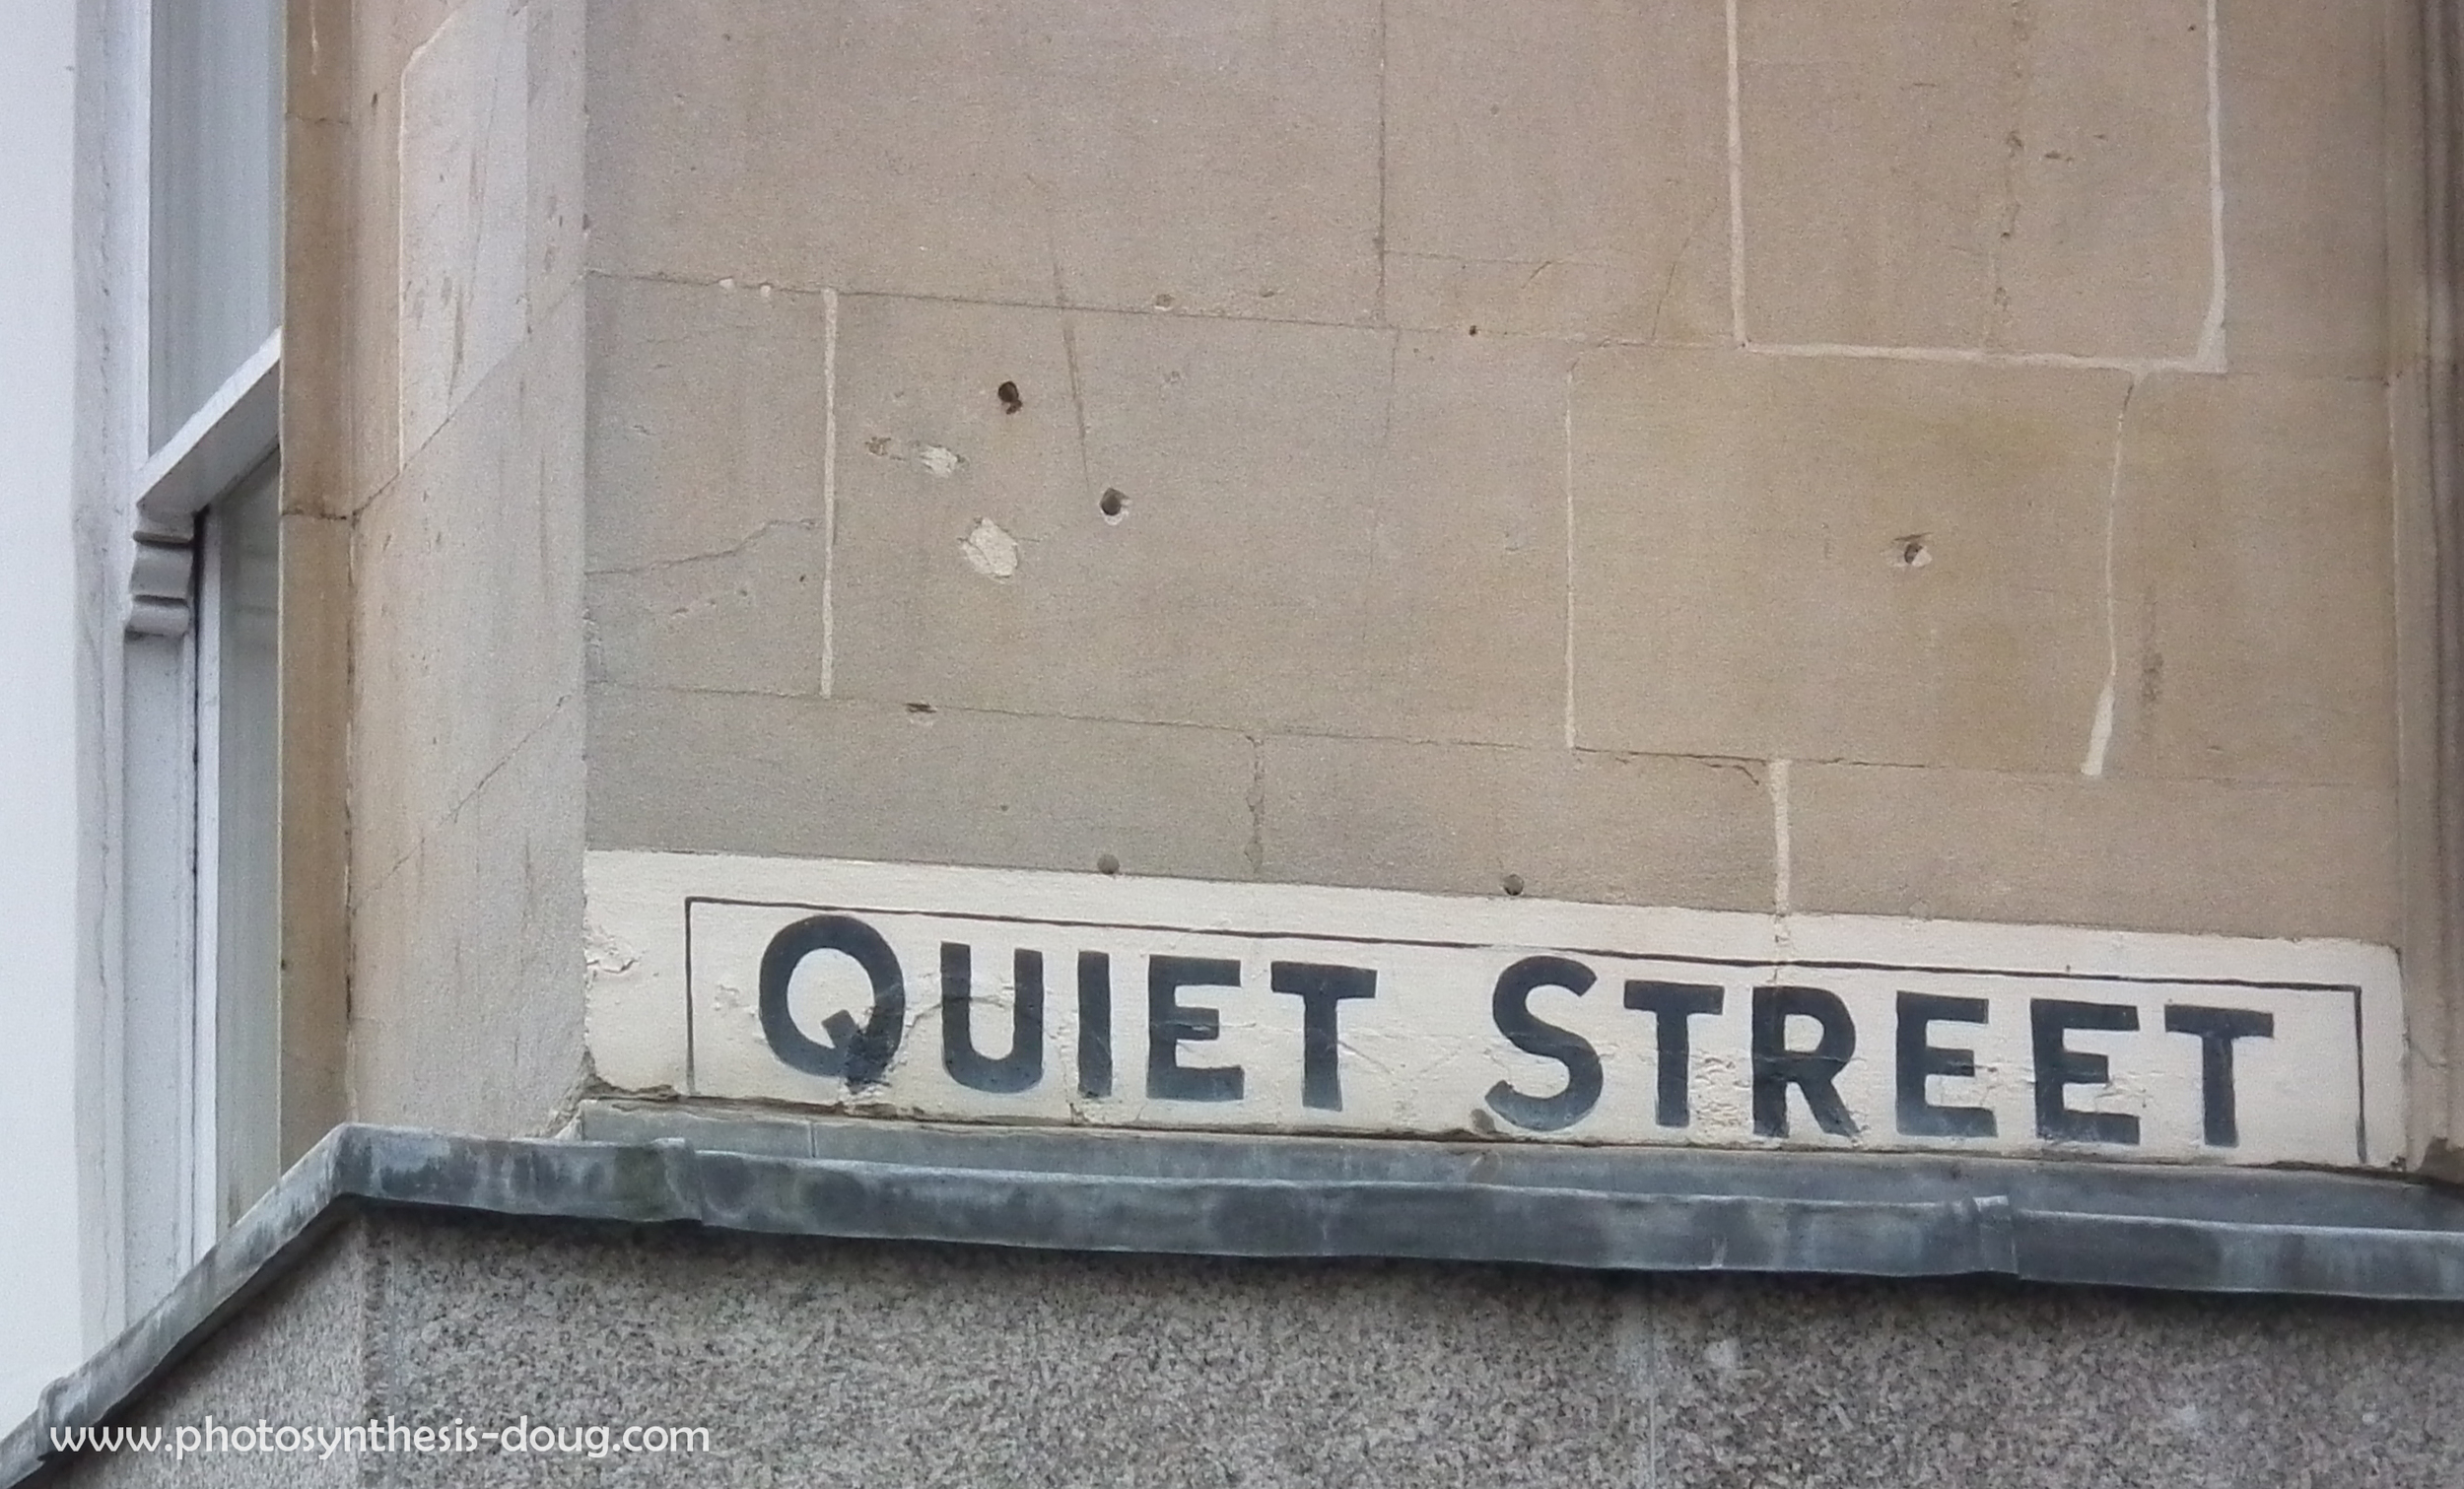 Quiet Street, Bath UK, 2011